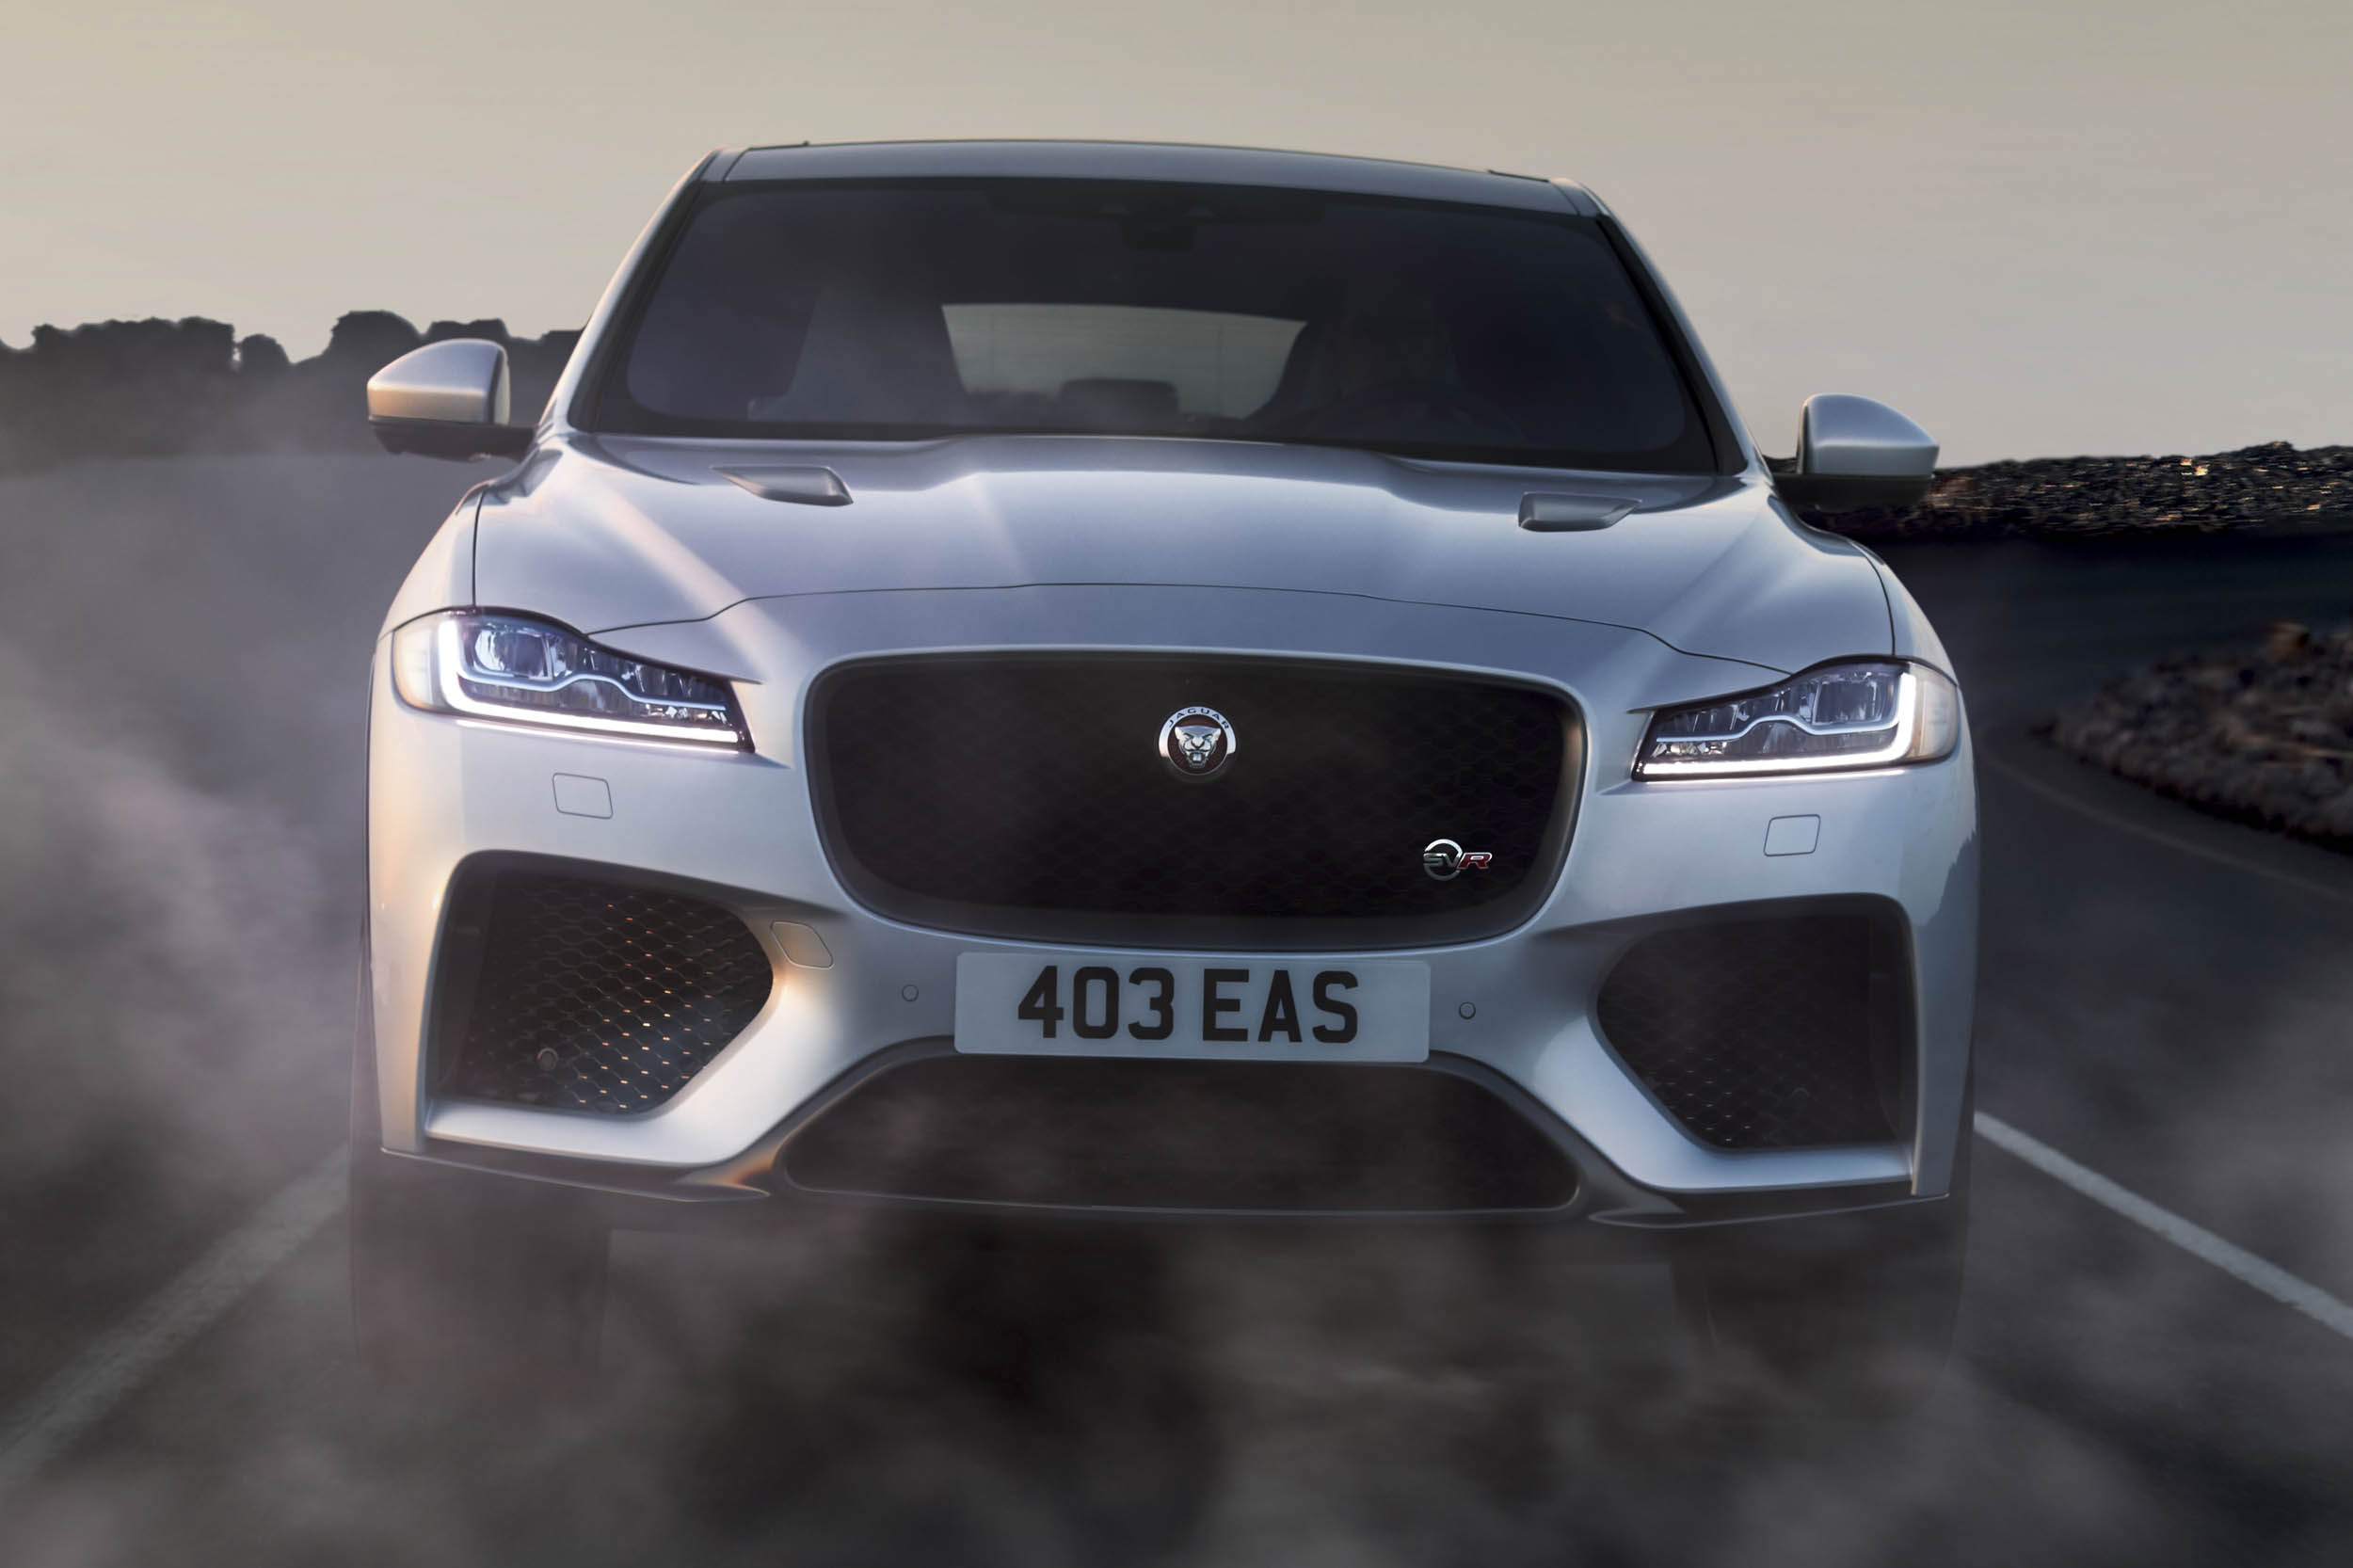 jaguar click suv preview open largest photos xq in image colors resolution to new type c